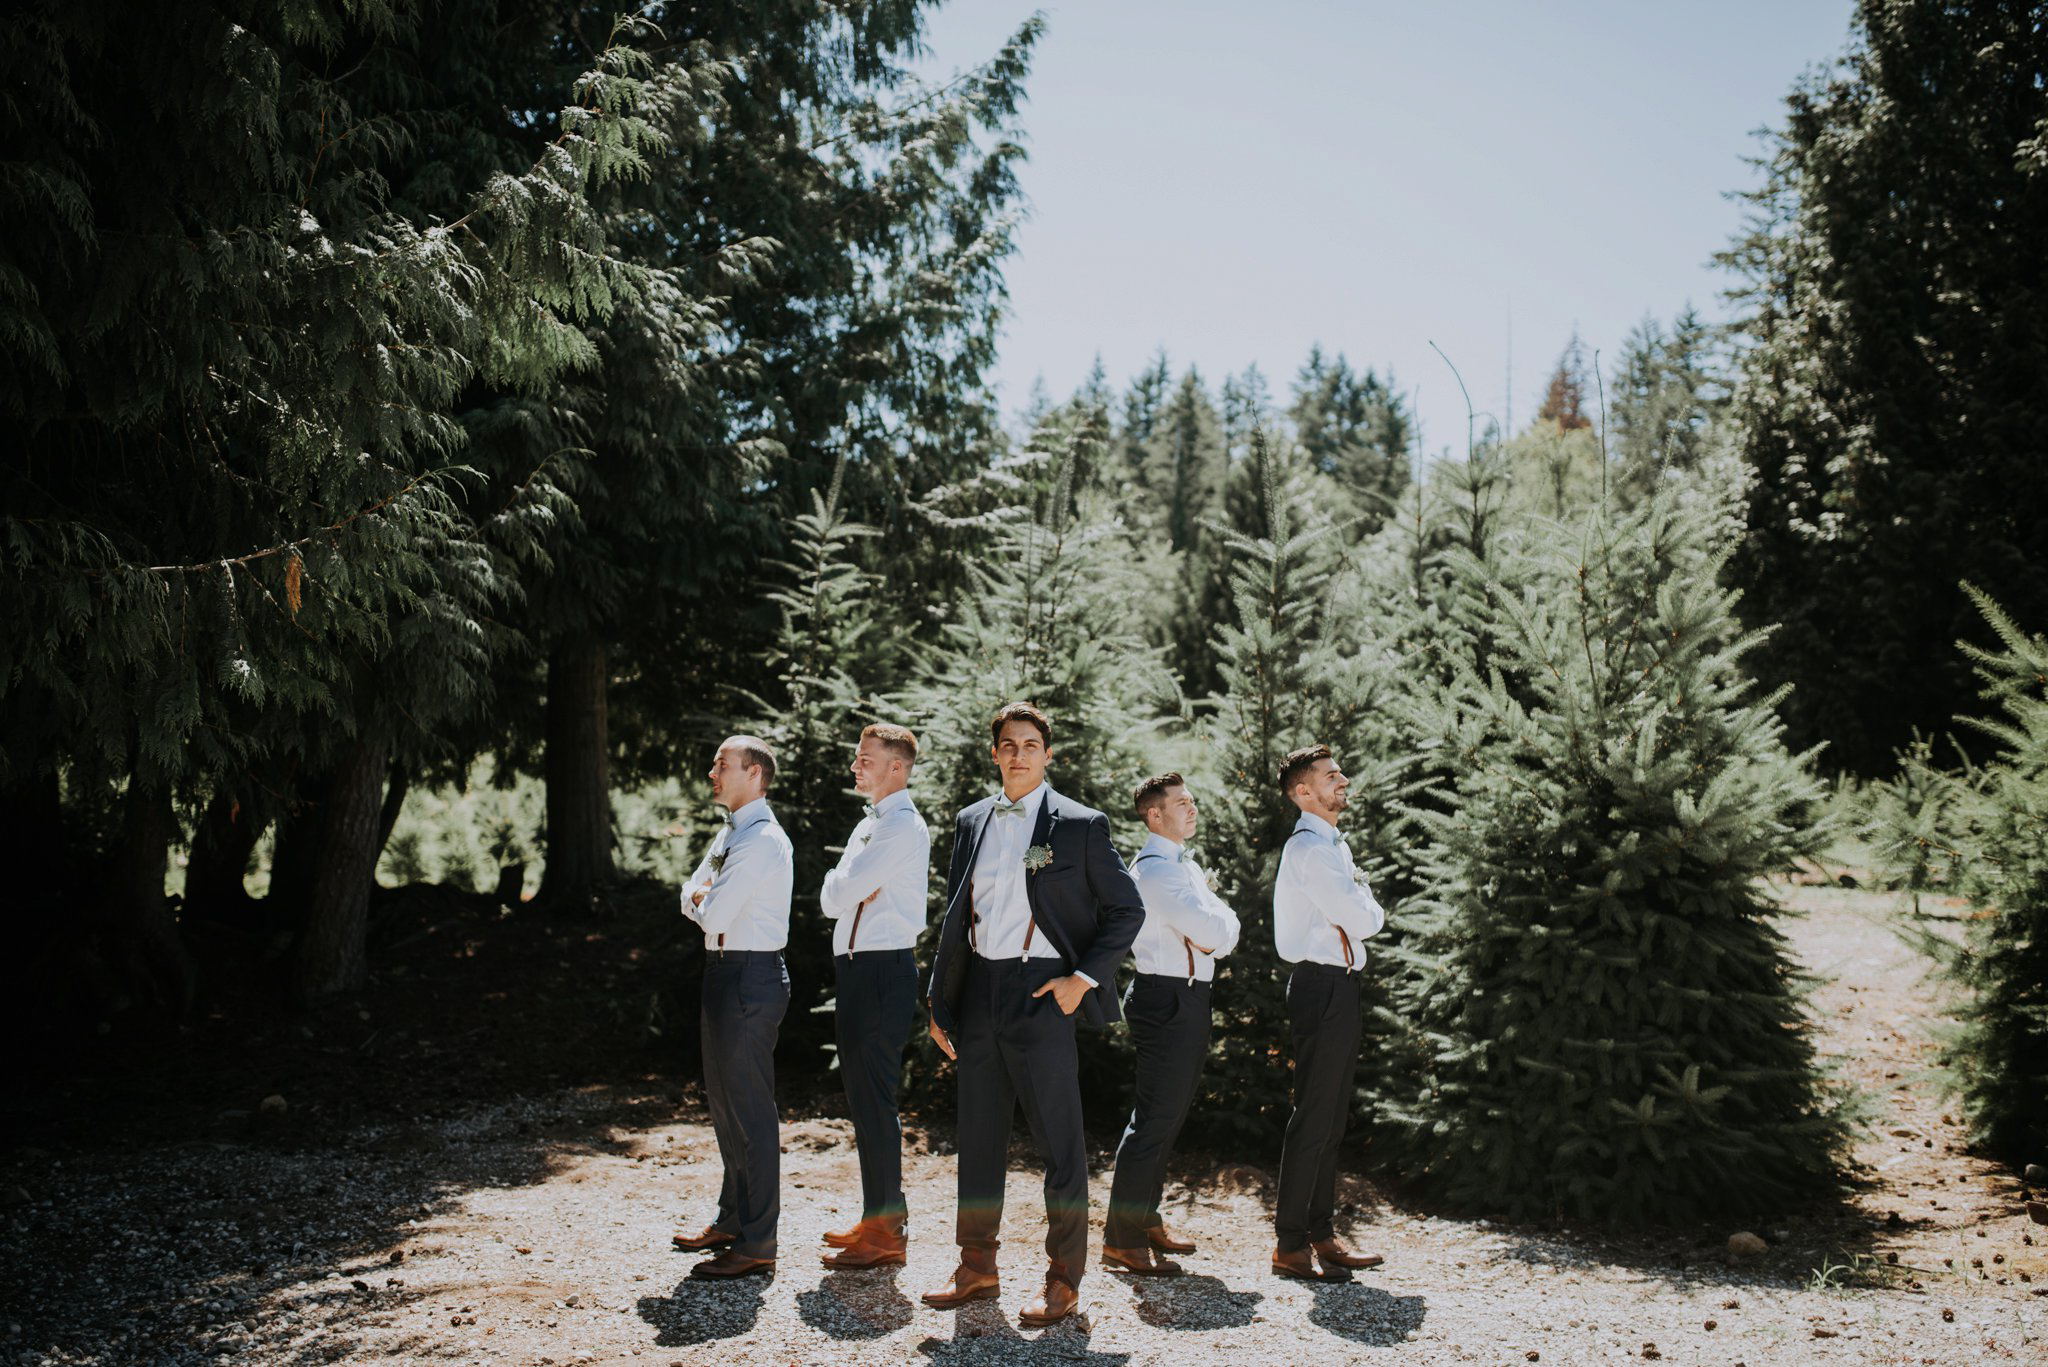 trinity-tree-farm-issaquah-washington-wedding-seattle-lifestyle-photographer-caitlyn-nikula-photography-42.jpg